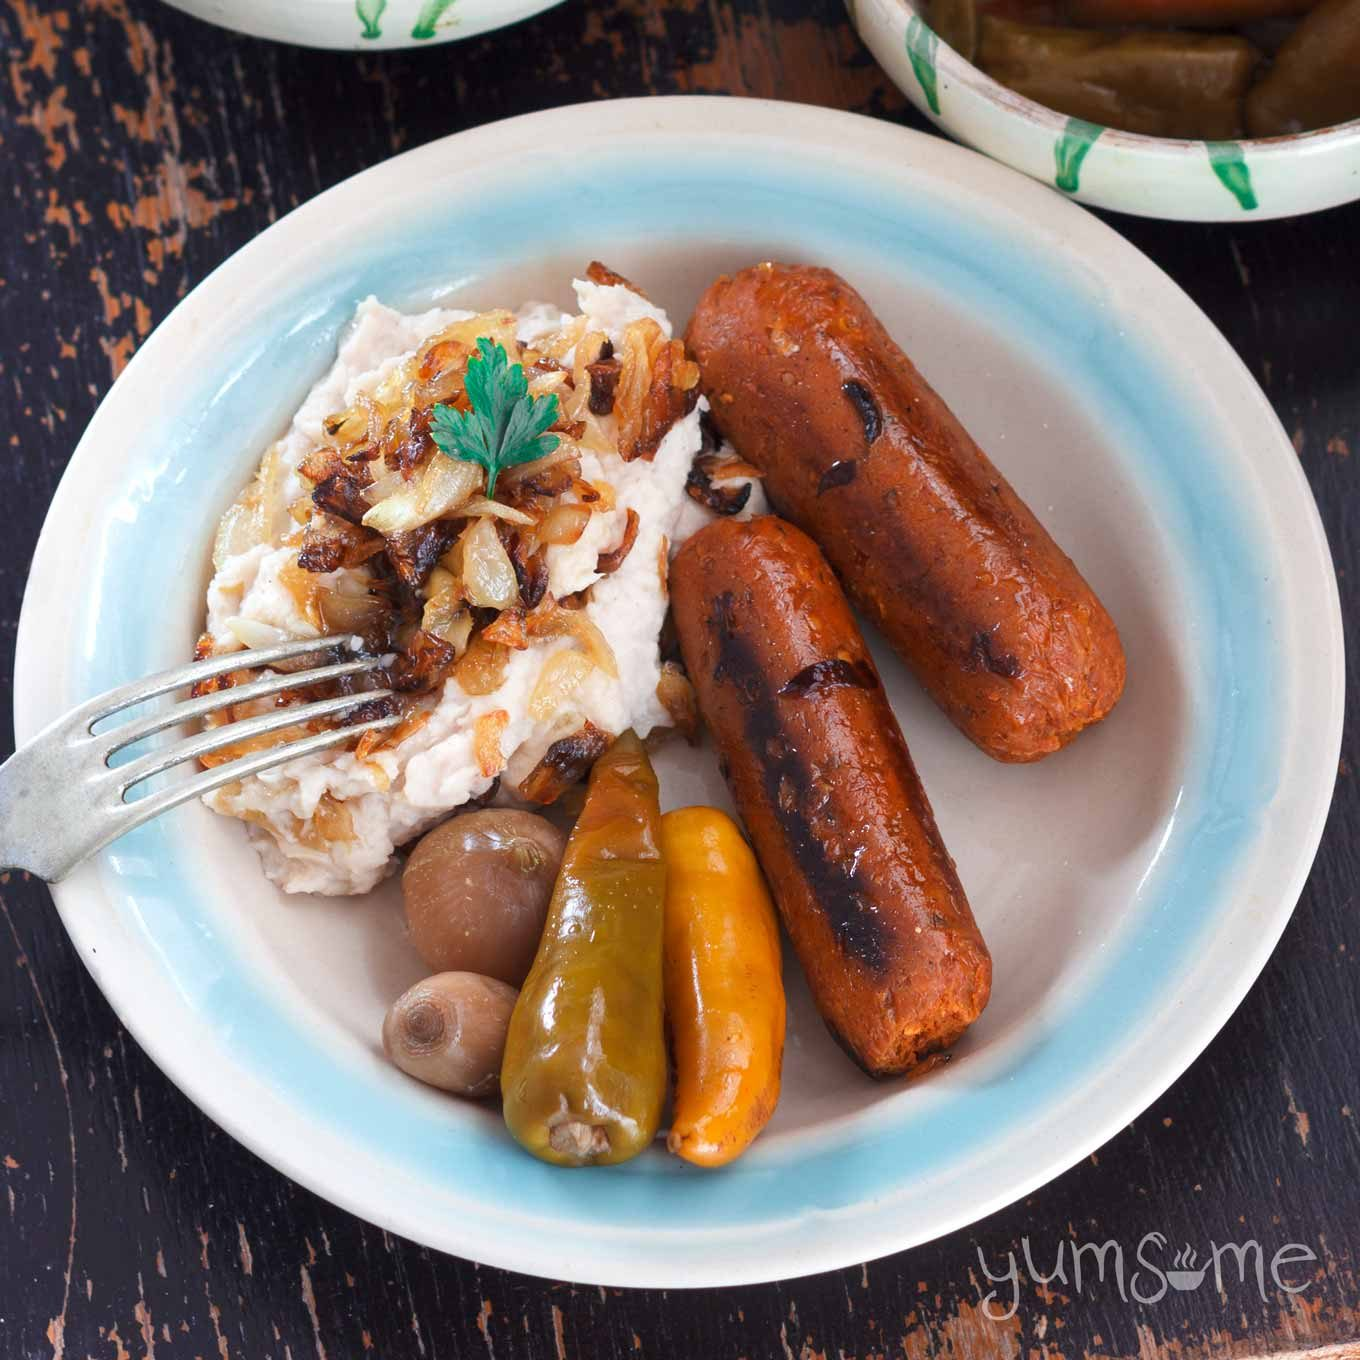 A white and blue plate with fasole bătută, sausages, and various mixed pickles, on a dark table.